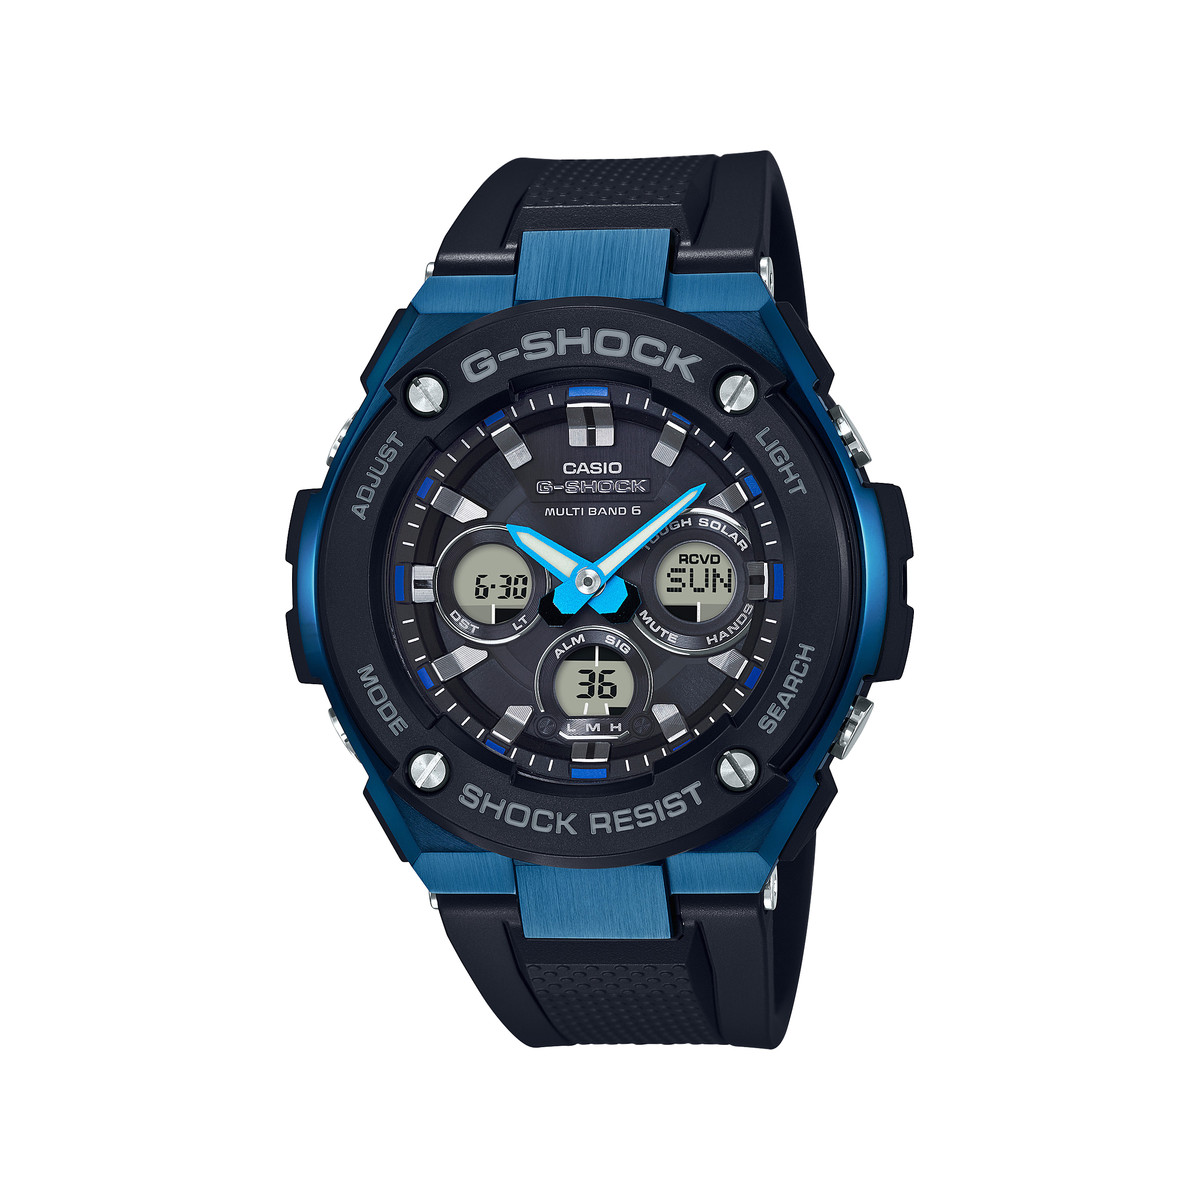 montre casio g shock homme acier bleu r sine homme mod le gst w300g 1a2er maty. Black Bedroom Furniture Sets. Home Design Ideas